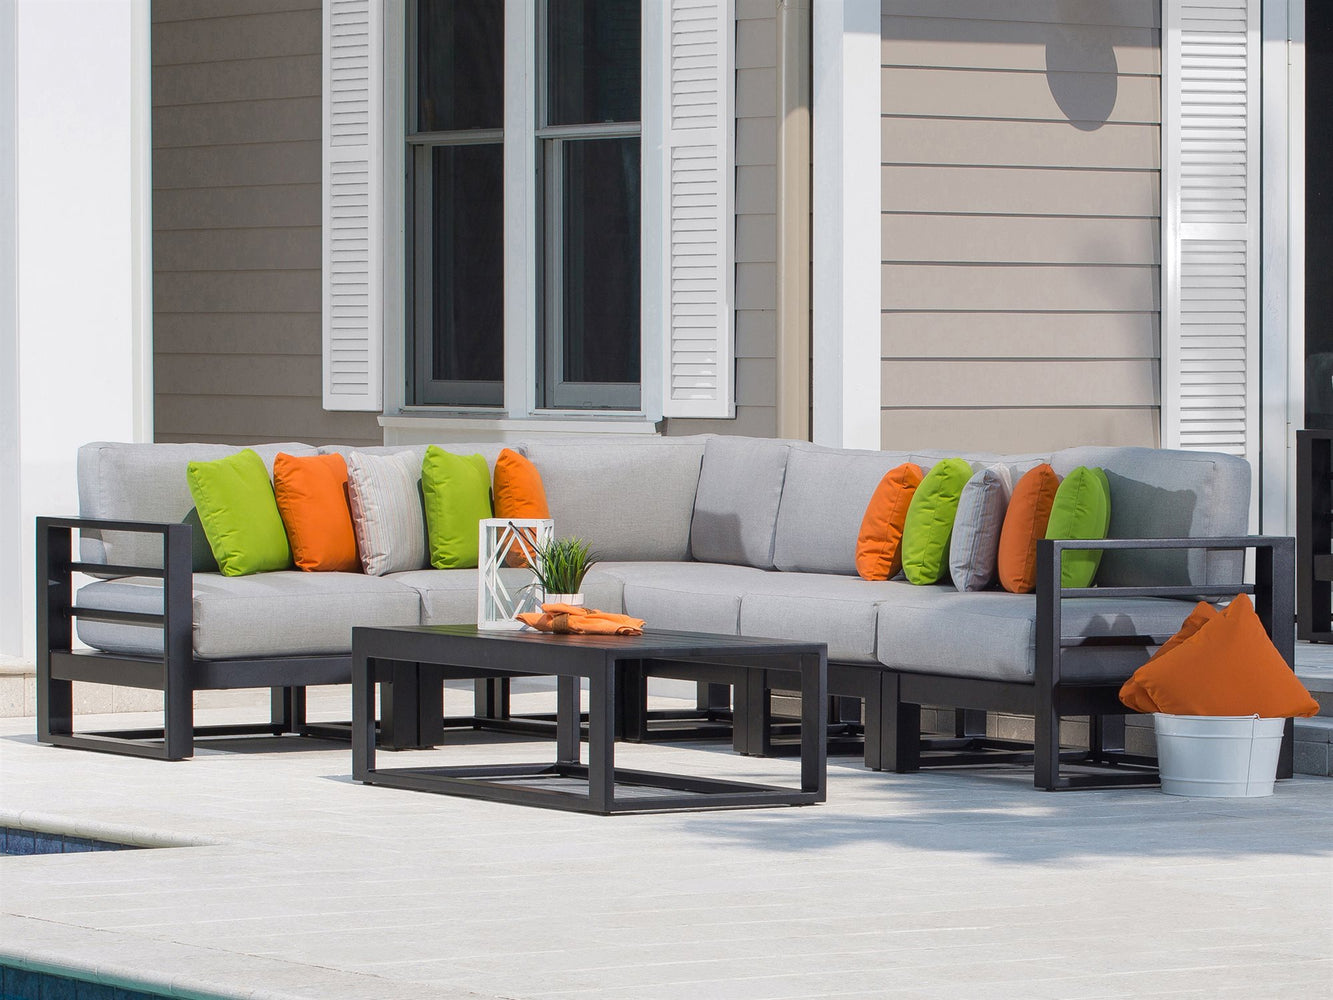 Palermo Sectional Sofa Set Great Backyard Place